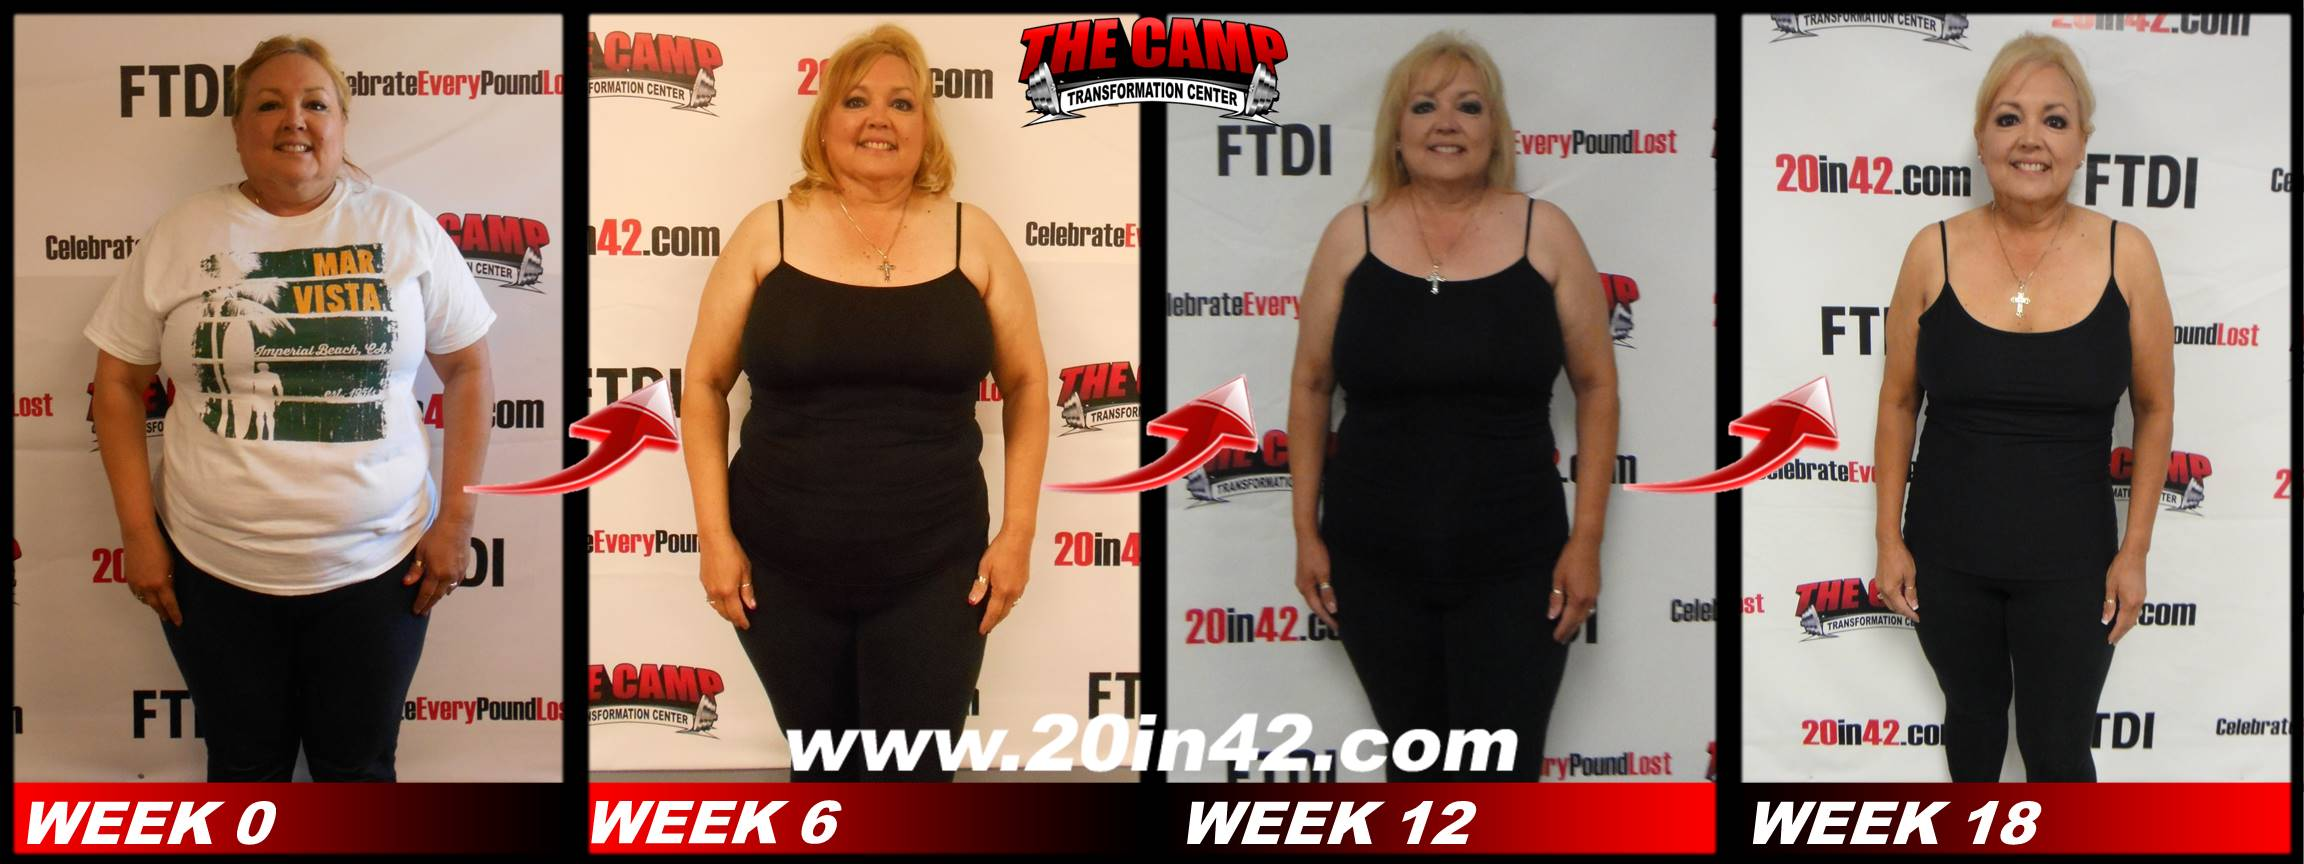 front facing view of a woman showing her weight loss after 6 weeks, 12 weeks, and 18 weeks in the weight loss program